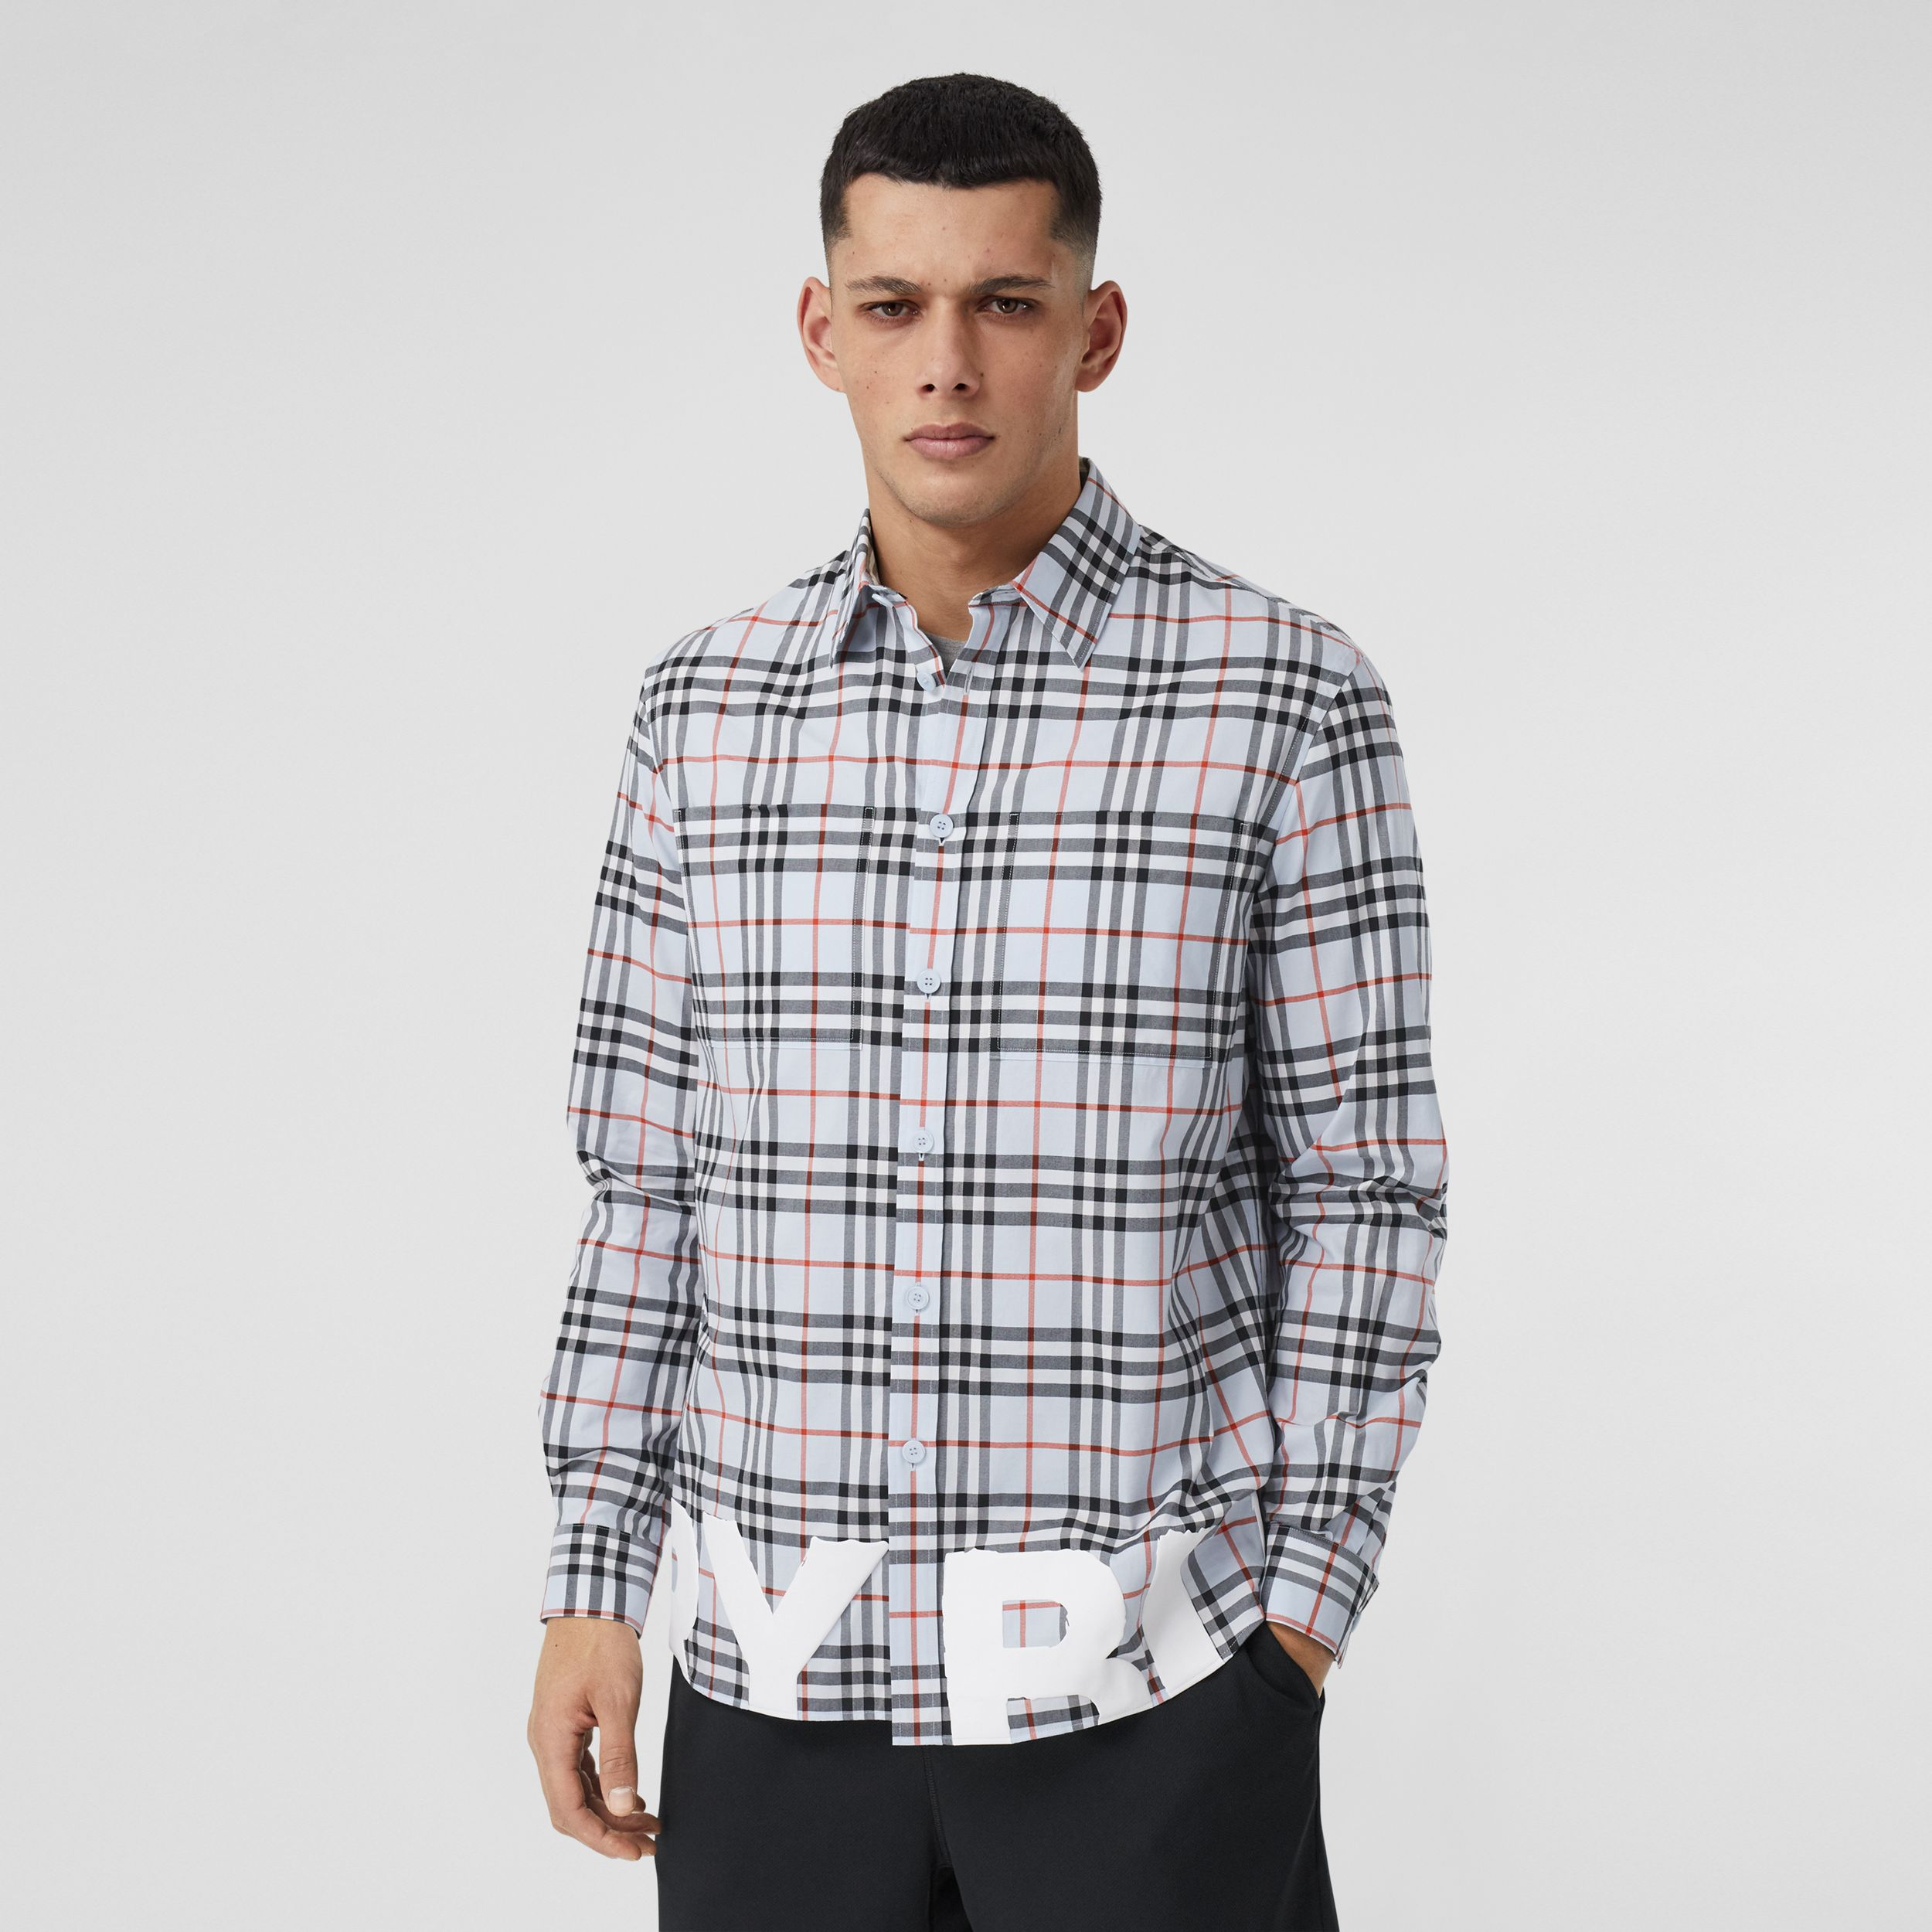 Logo Print Vintage Check Cotton Oversized Shirt – Online Exclusive in Pale Blue - Men | Burberry United Kingdom - 1